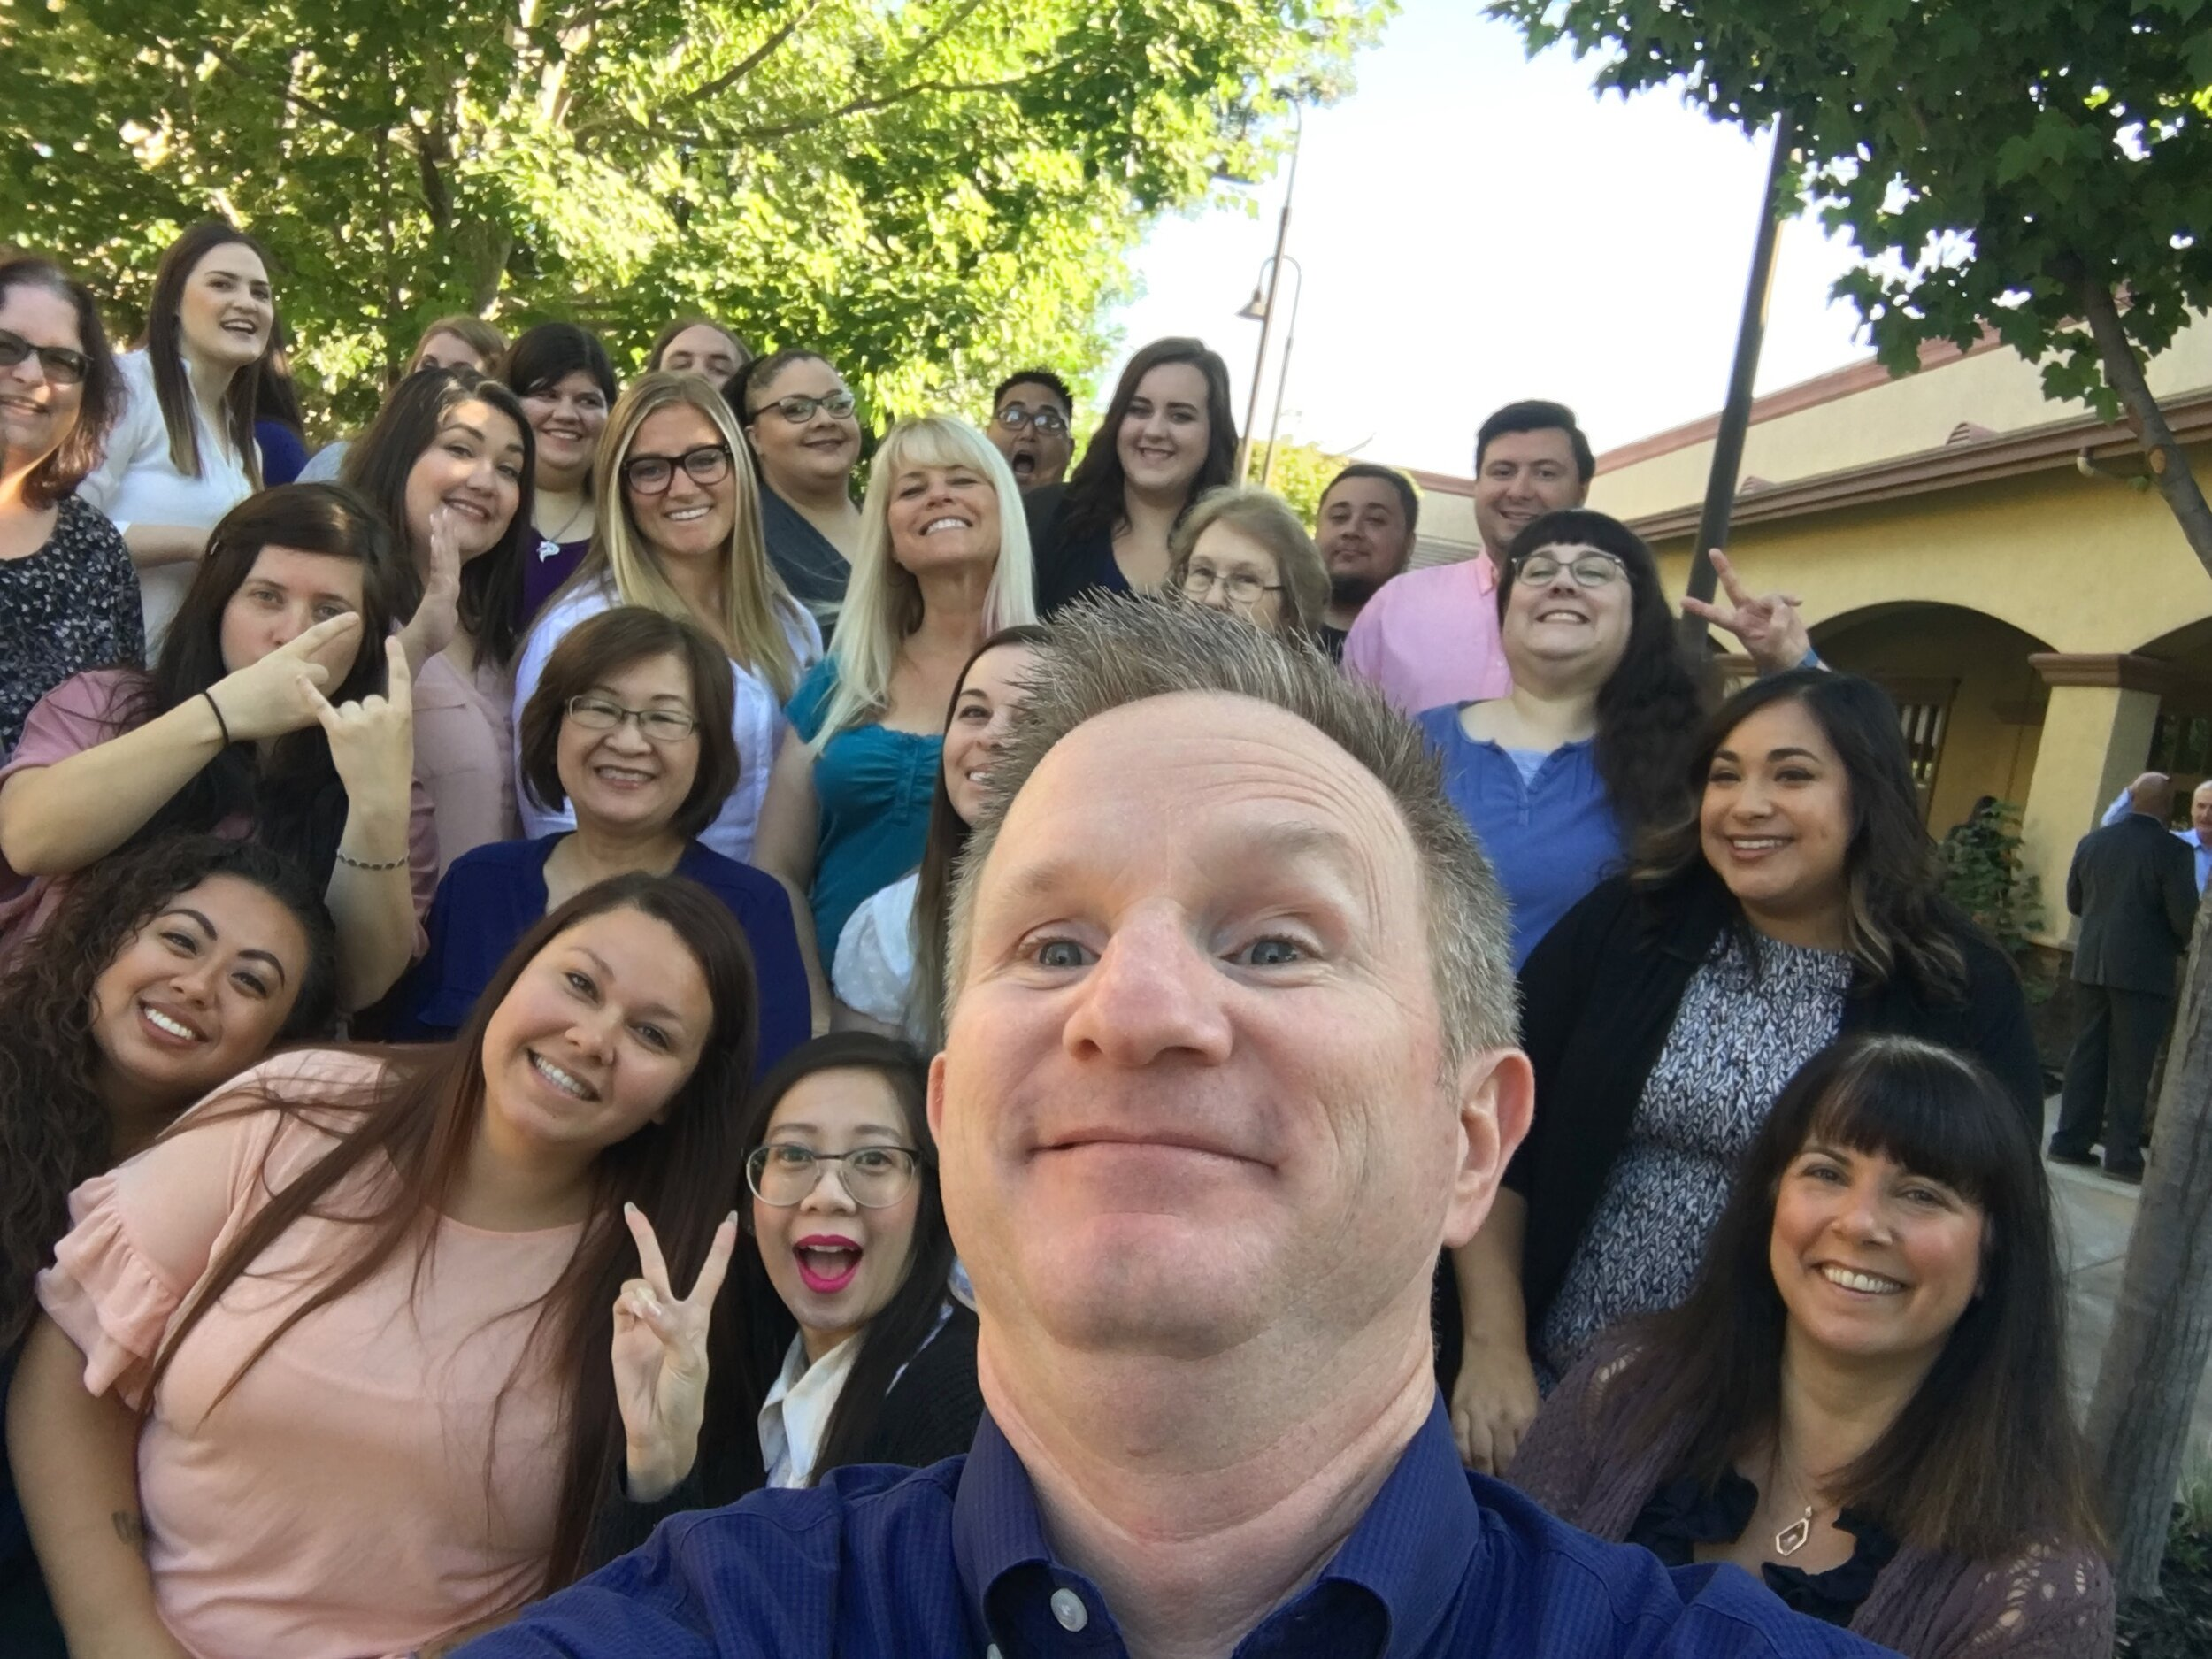 Right before our recent corporate team photo… it's time to take a selfie!